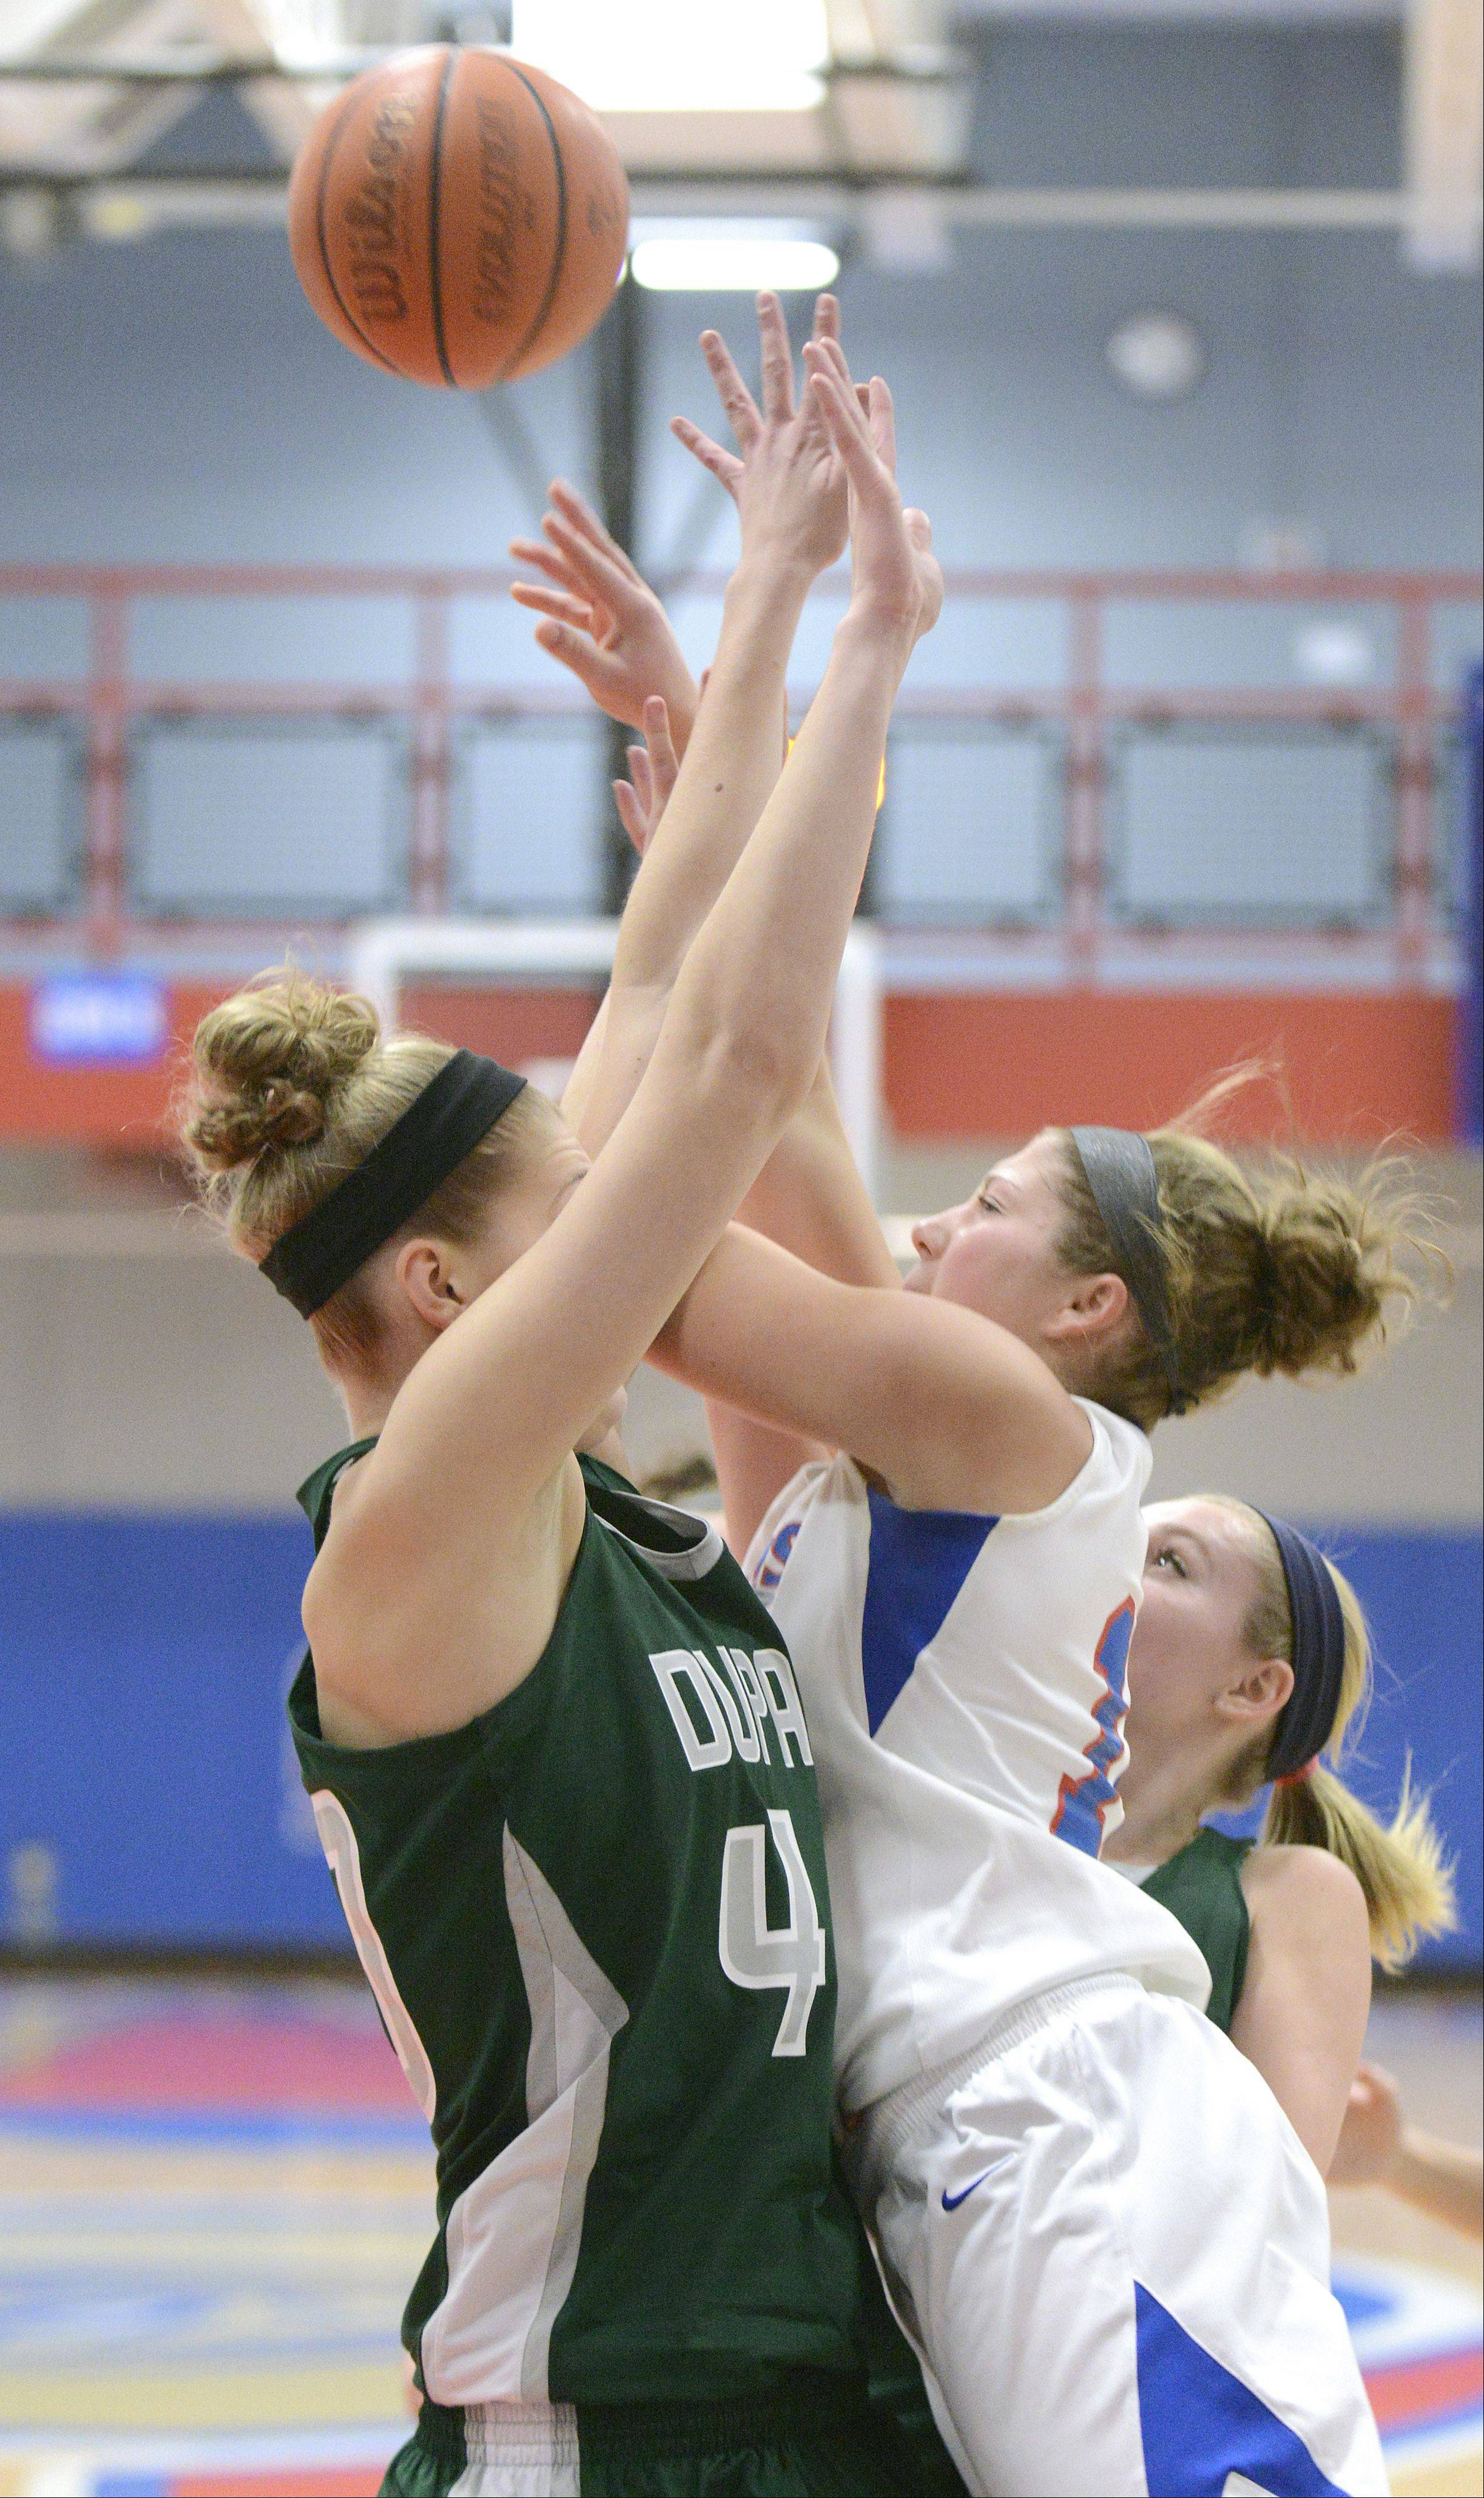 Elgin Community College's Jen Dumoulin, right, smashes into College of DuPage's Melissa Niggins while going up to the hoop in the second half on Tuesday.